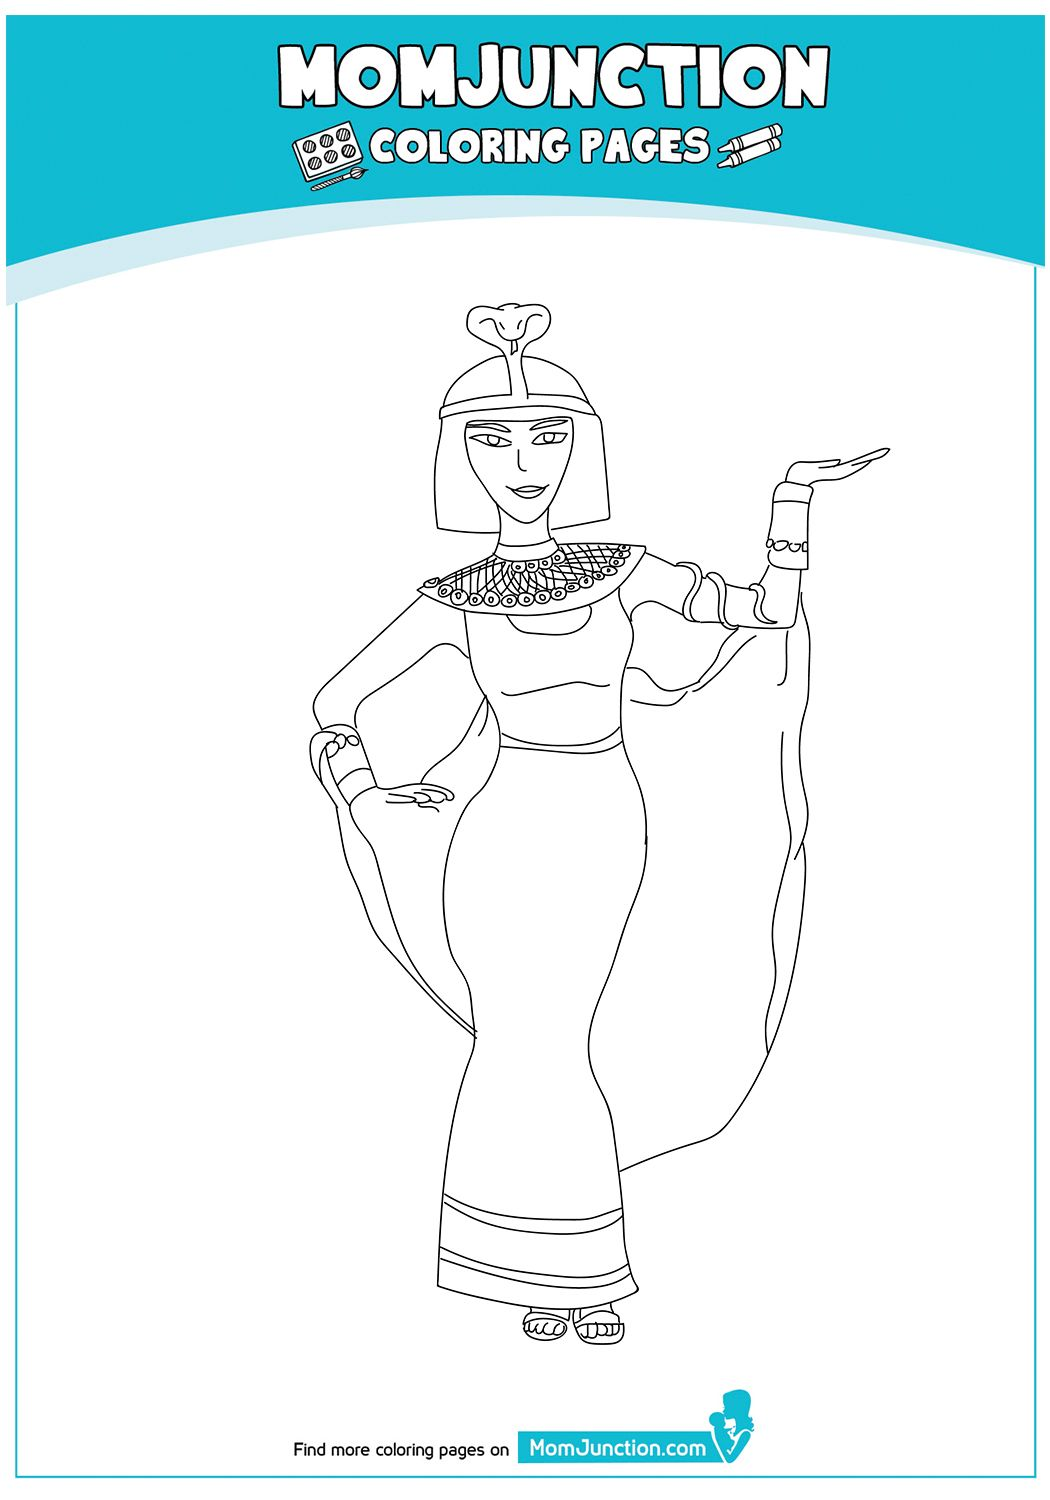 Cleopatra-20  Mom junction, Coloring pages, Teaching history